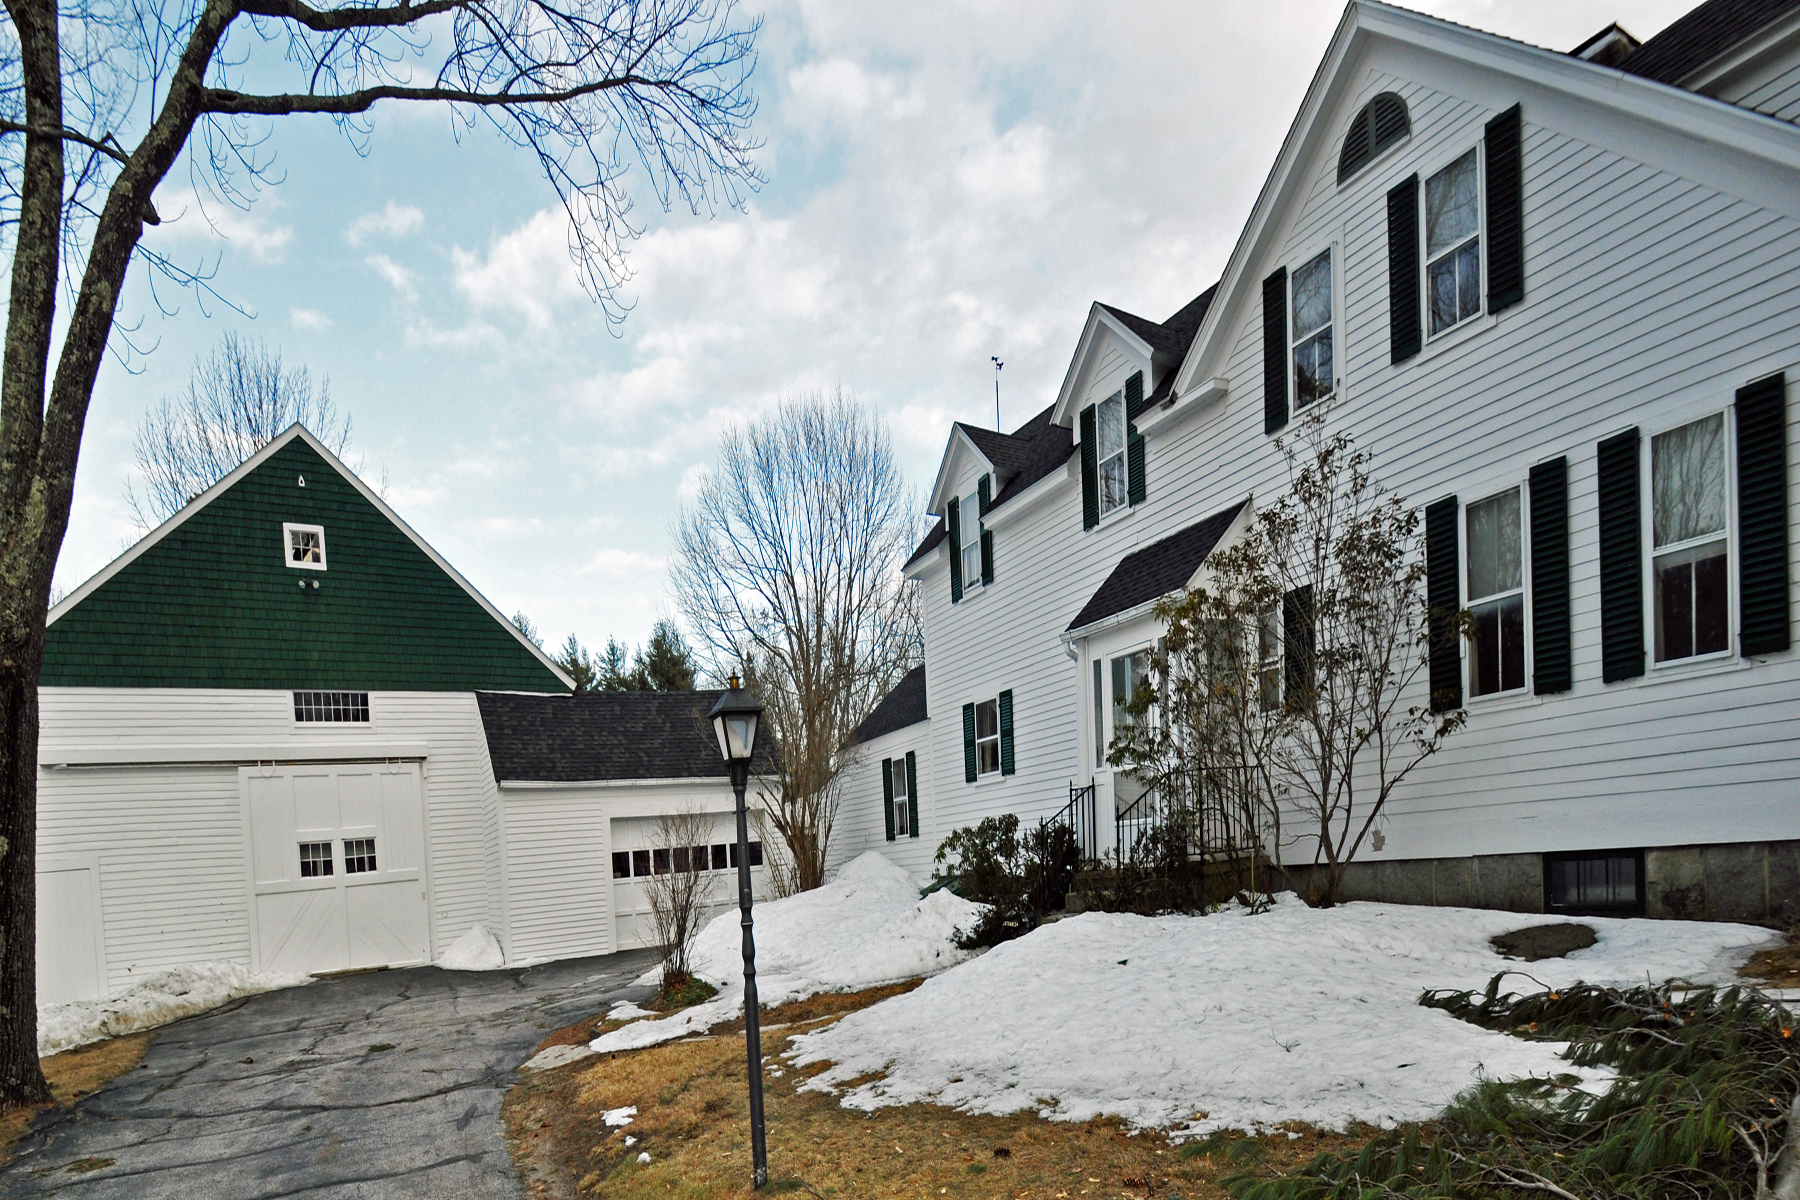 Single Family Home for Sale at 105 Old Street Rd, Peterborough Peterborough, New Hampshire 03458 United States